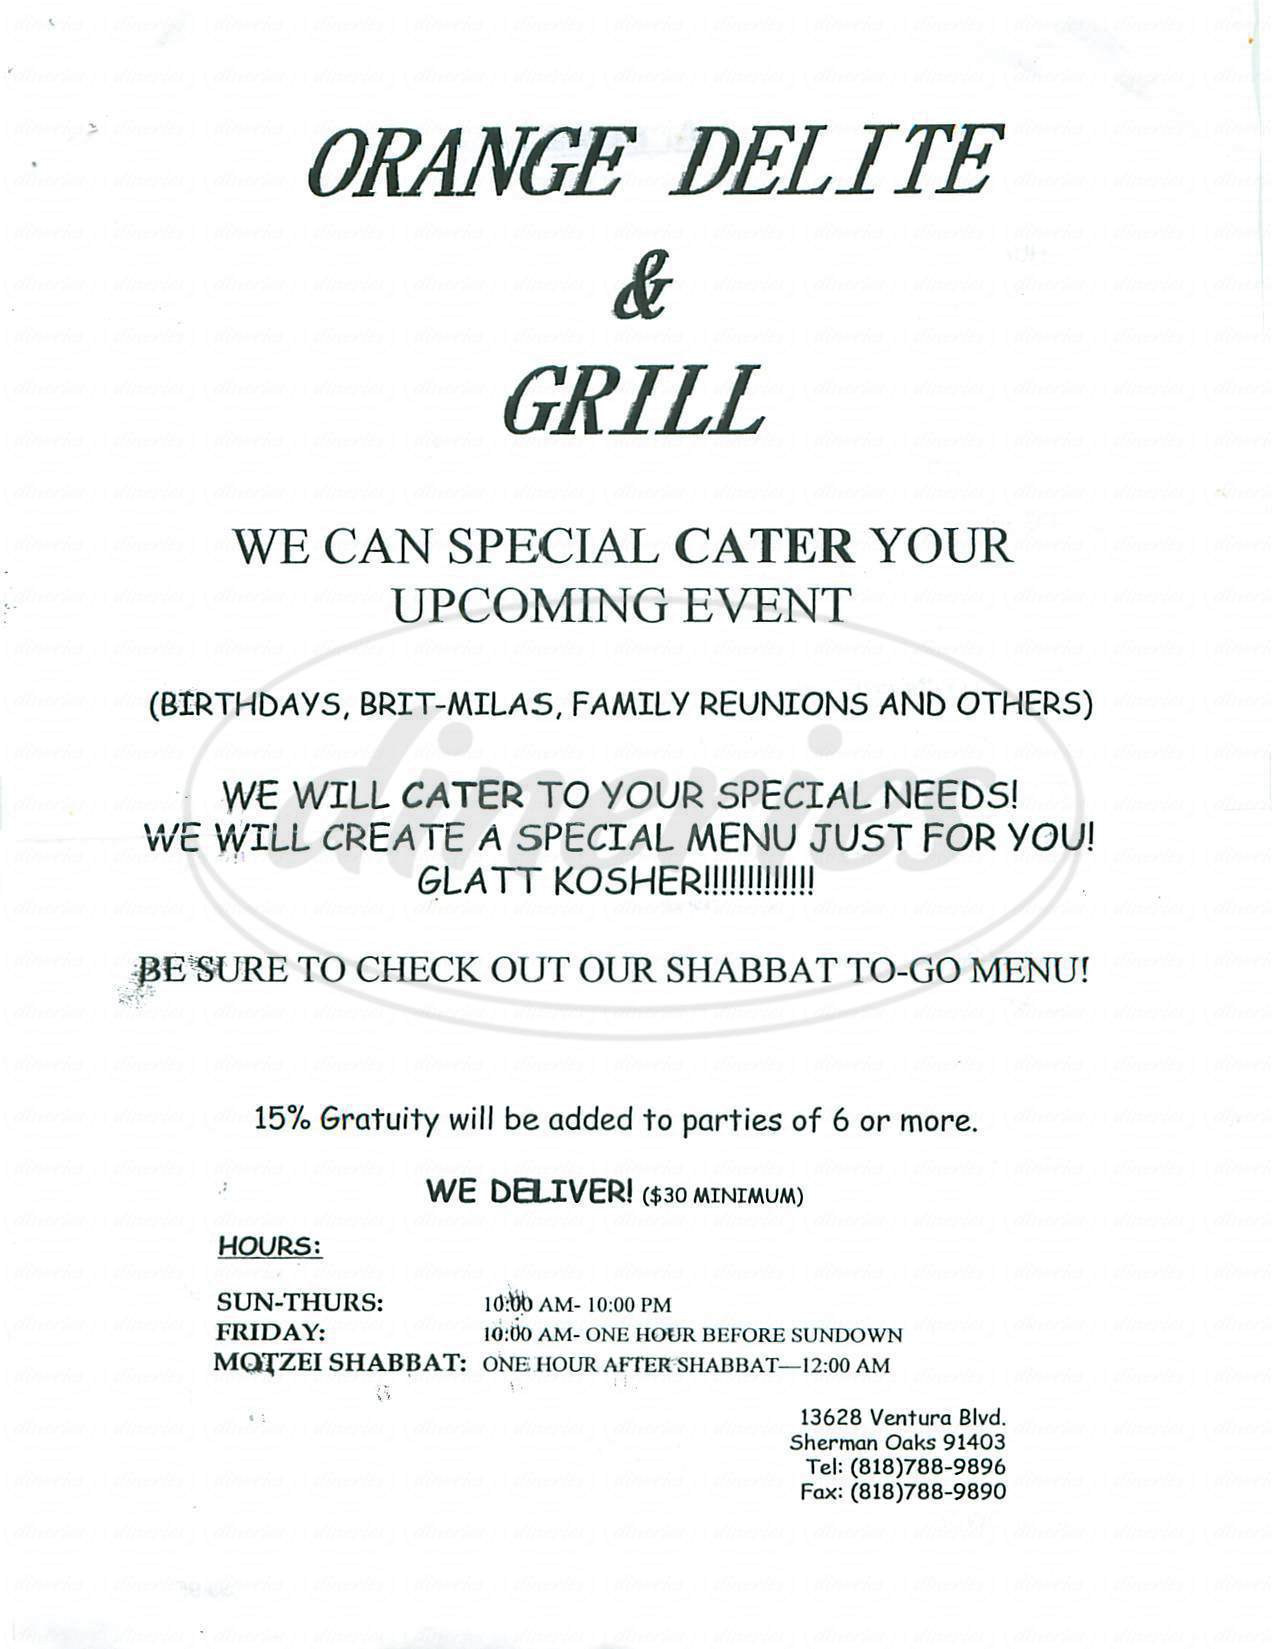 menu for Orange Delite & Grill